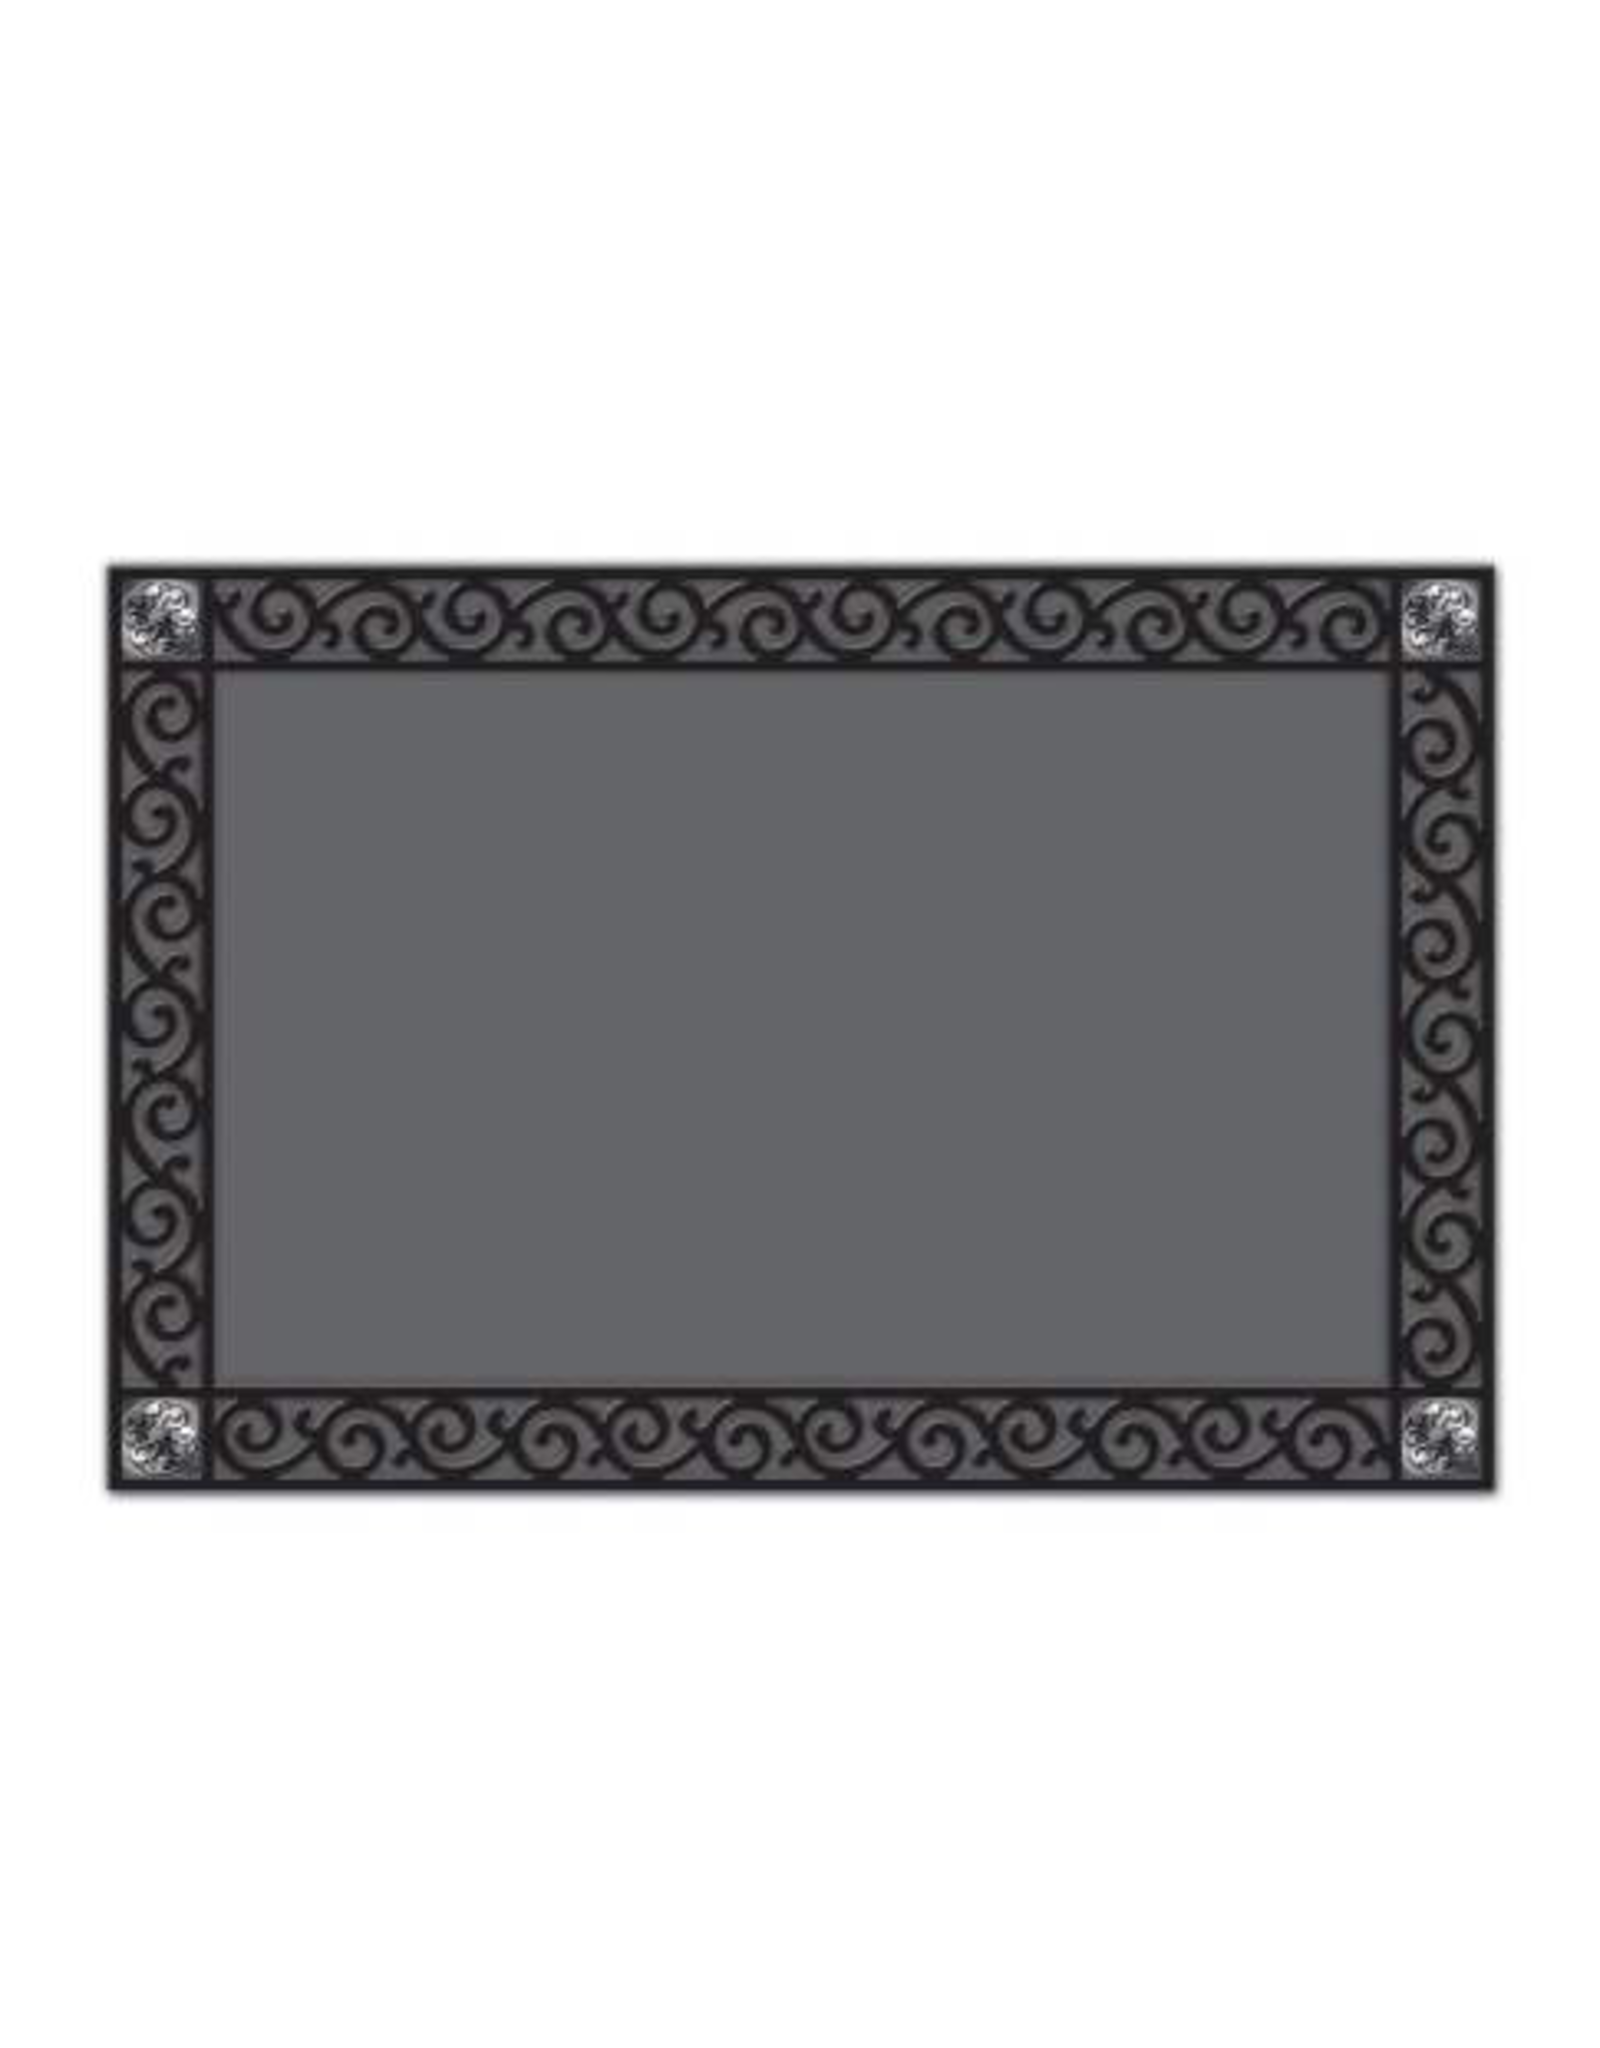 Premier Gift PGTRAY Recycled Rubber Tray SALE